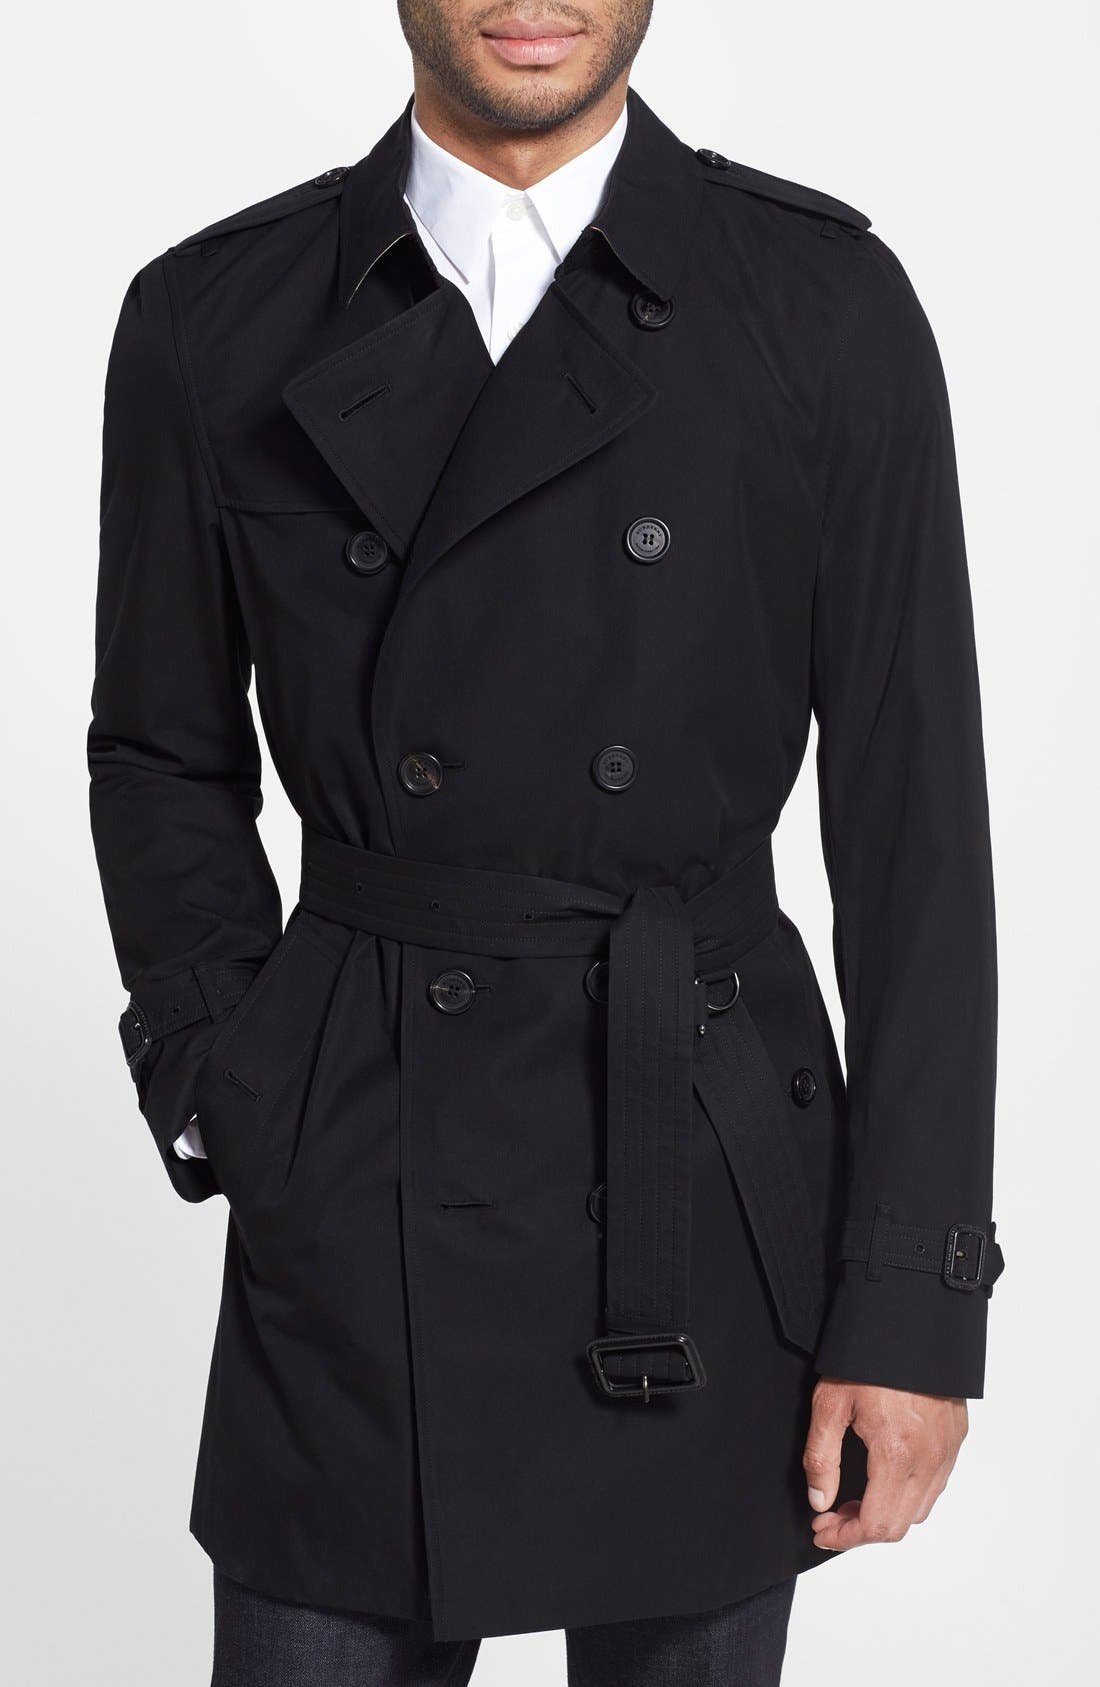 Kensington Double Breasted Trench Coat,                             Main thumbnail 1, color,                             BLACK-NEW